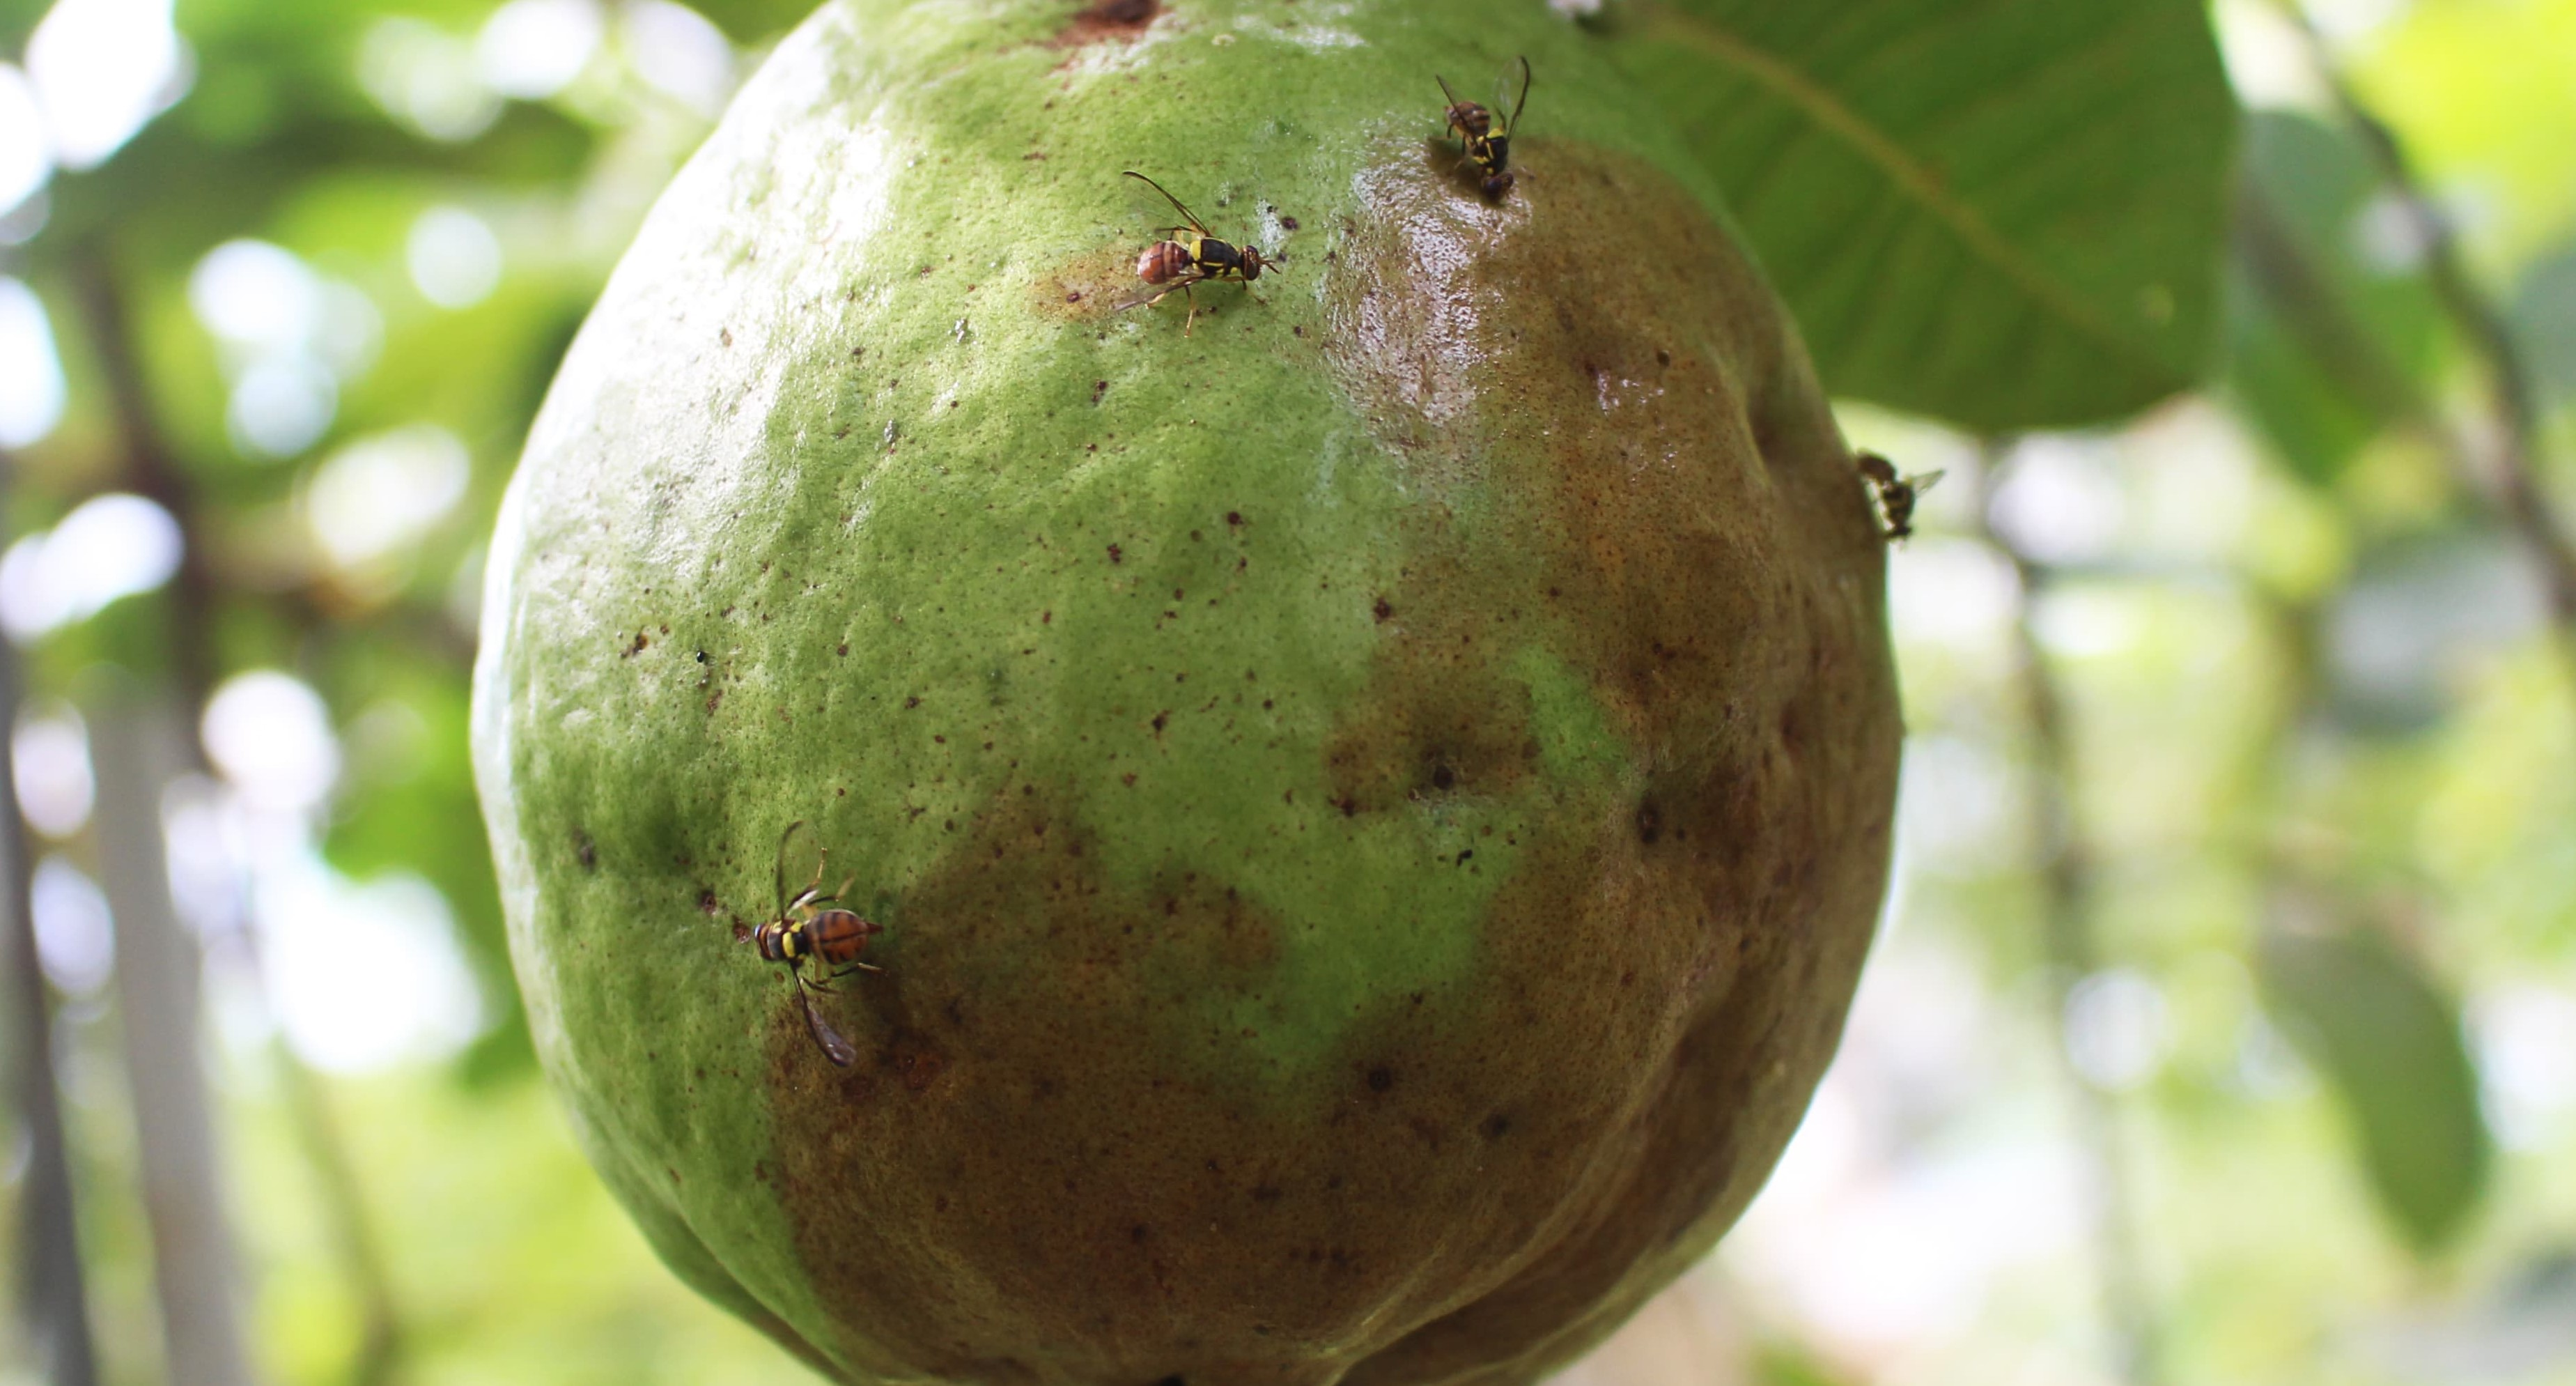 How to control Fruit fly in Guava?